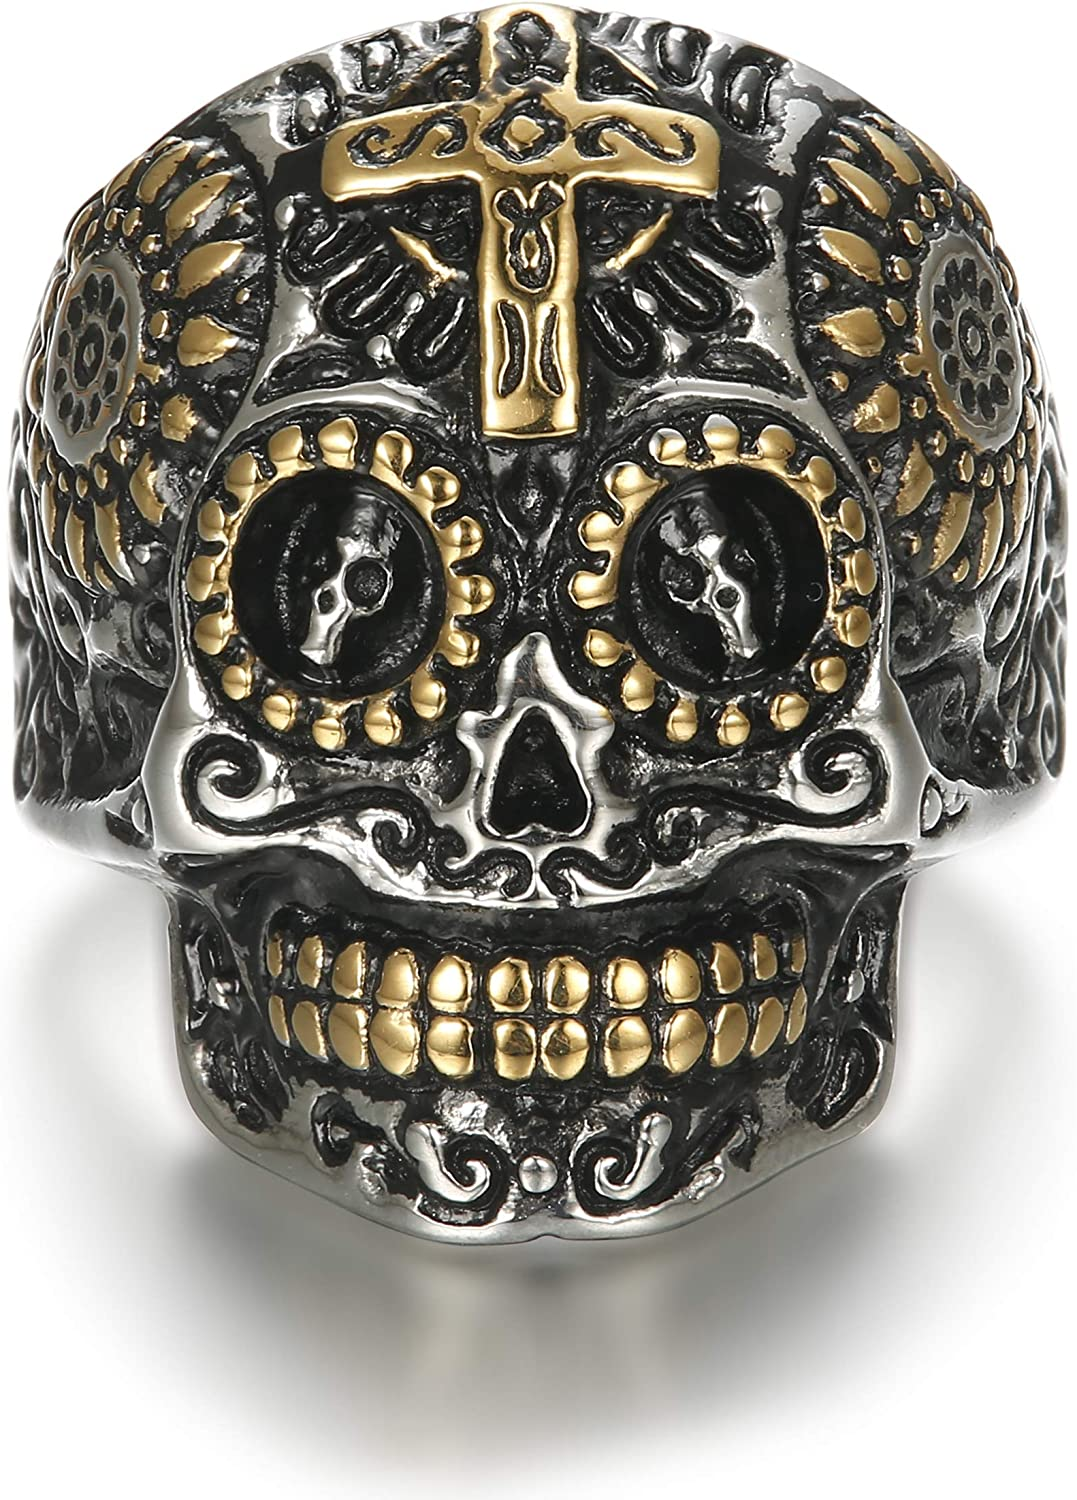 LOLIAS Skull Rings Stainless Steel Skull Rings for Men Biker Cross Rings Vintage Size 7-13